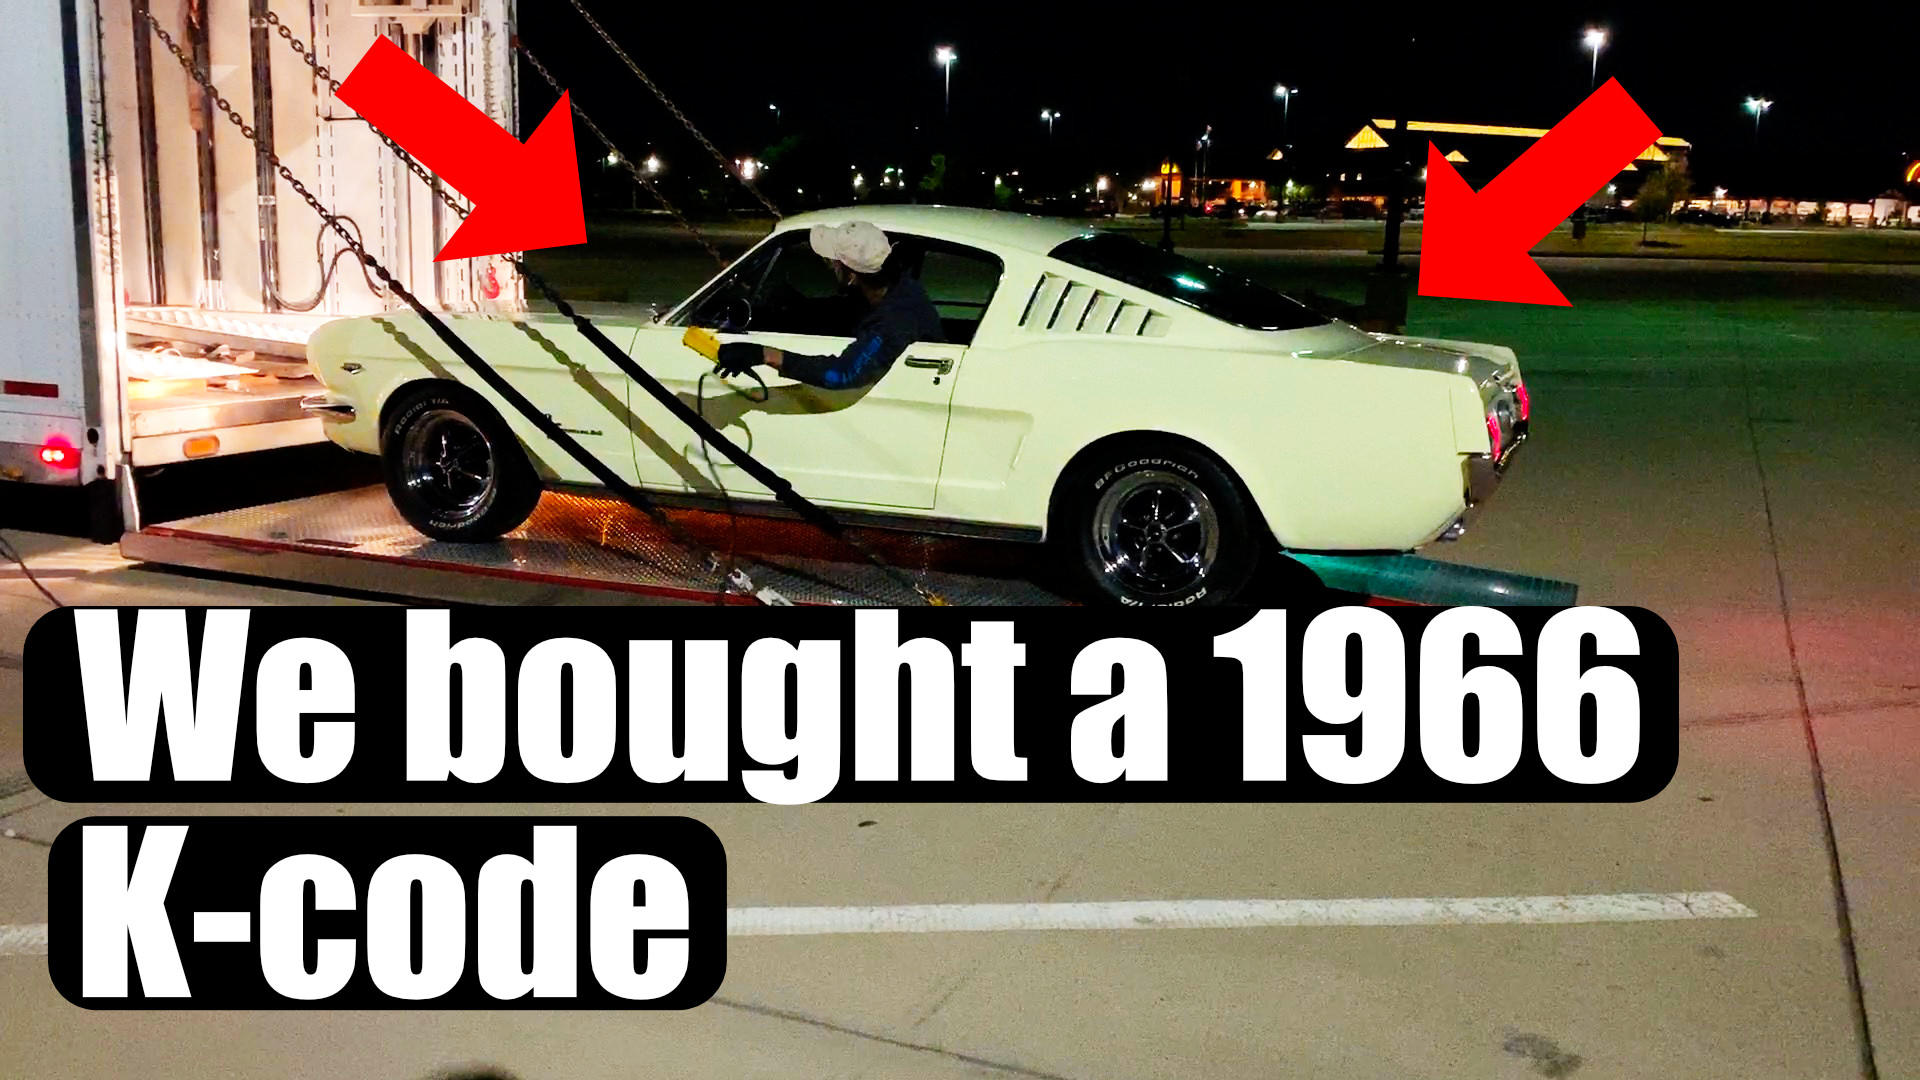 We Just Bought a 1966 K code… and it's AWESOME!